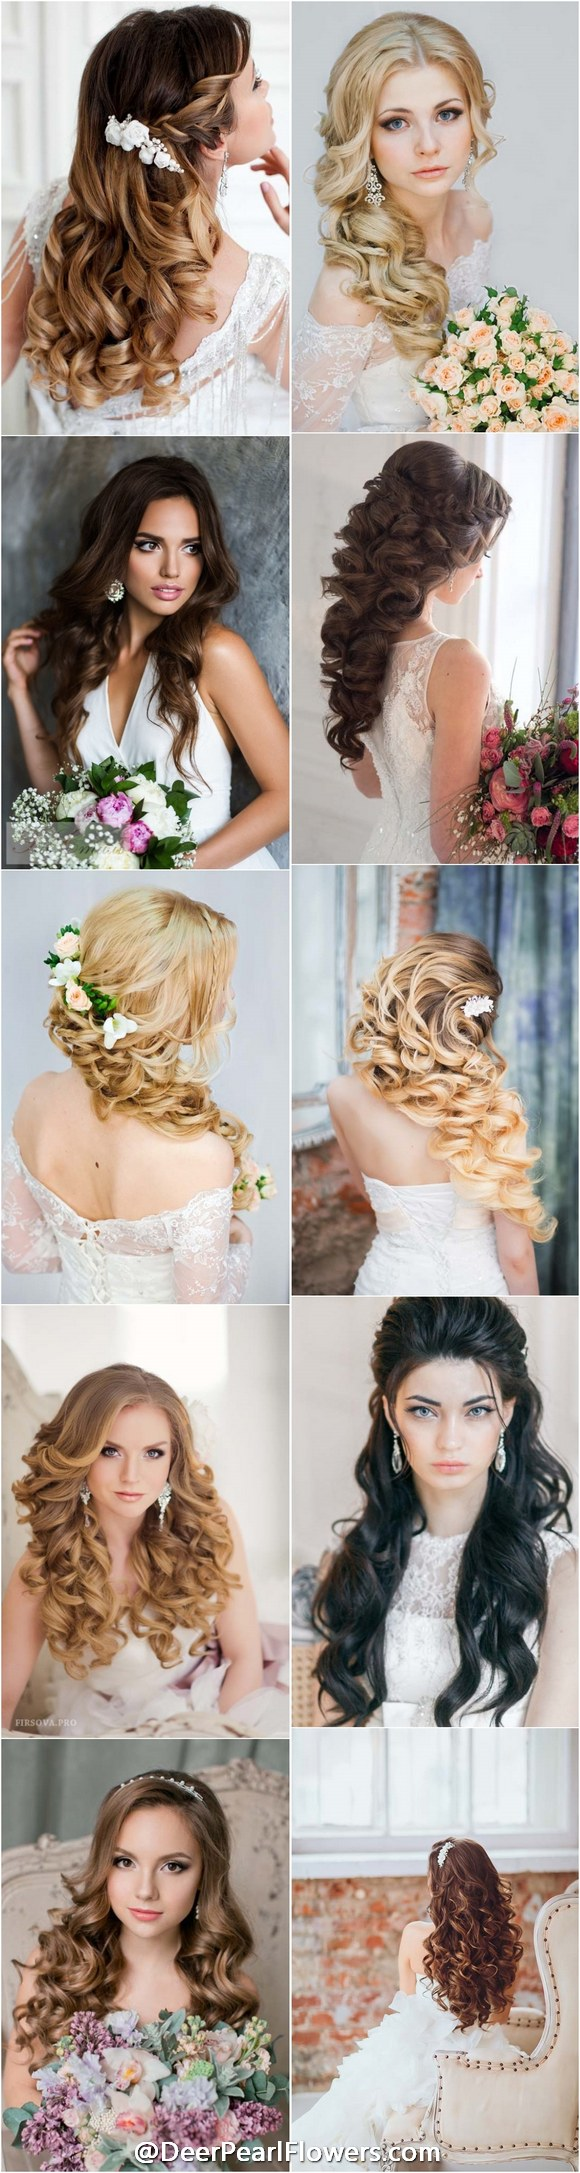 Top long wedding hairstyles and updos for peinados pinterest